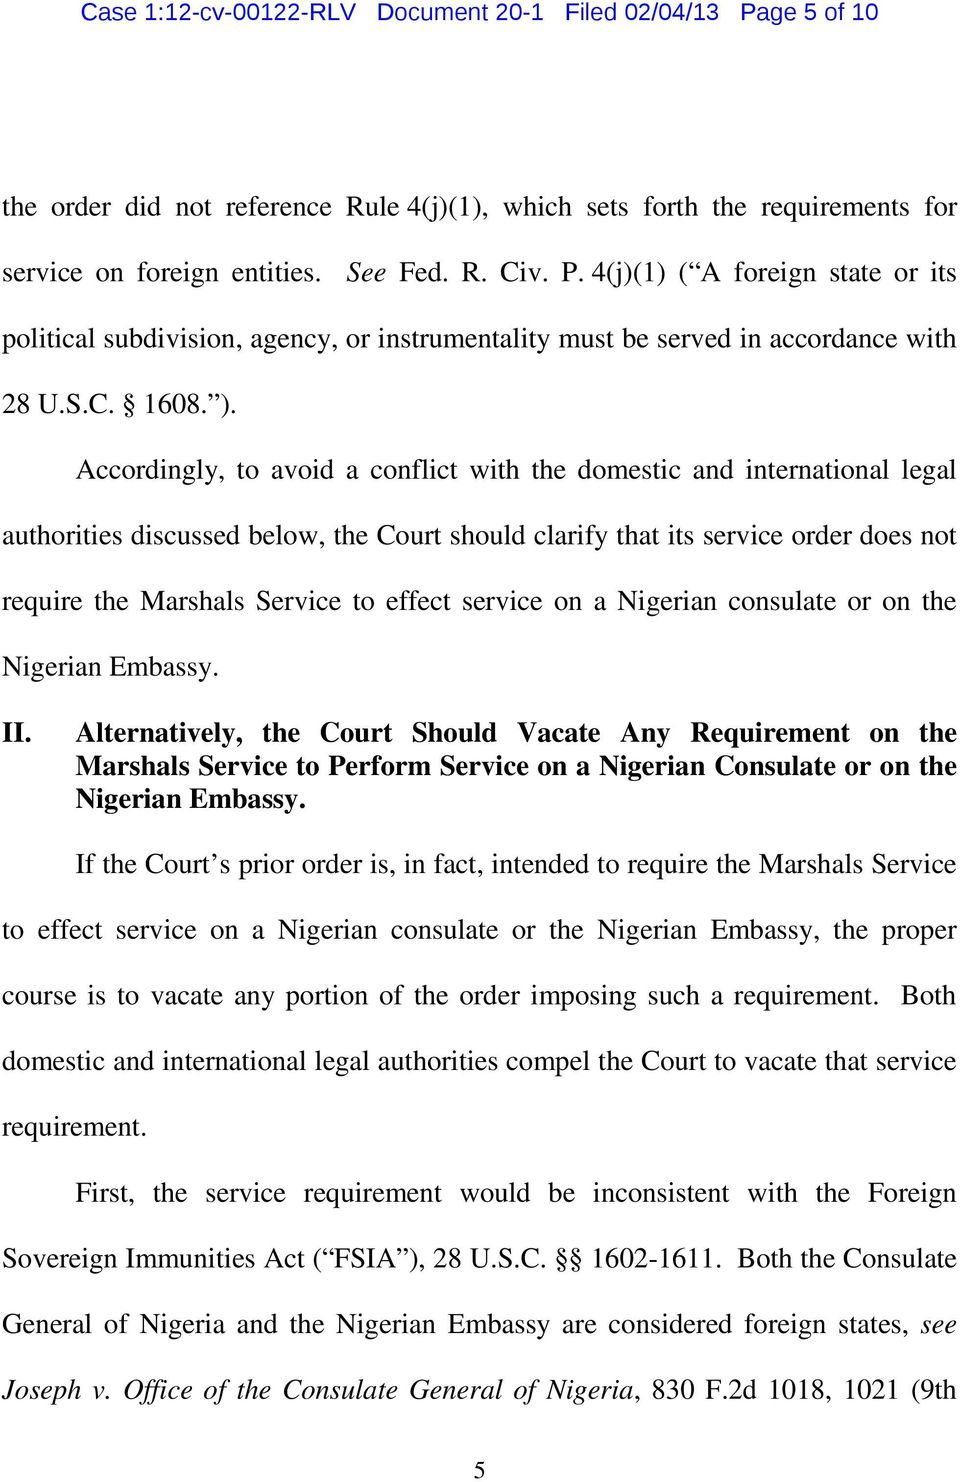 . Accordingly, to avoid a conflict with the domestic and international legal authorities discussed below, the Court should clarify that its service order does not require the Marshals Service to